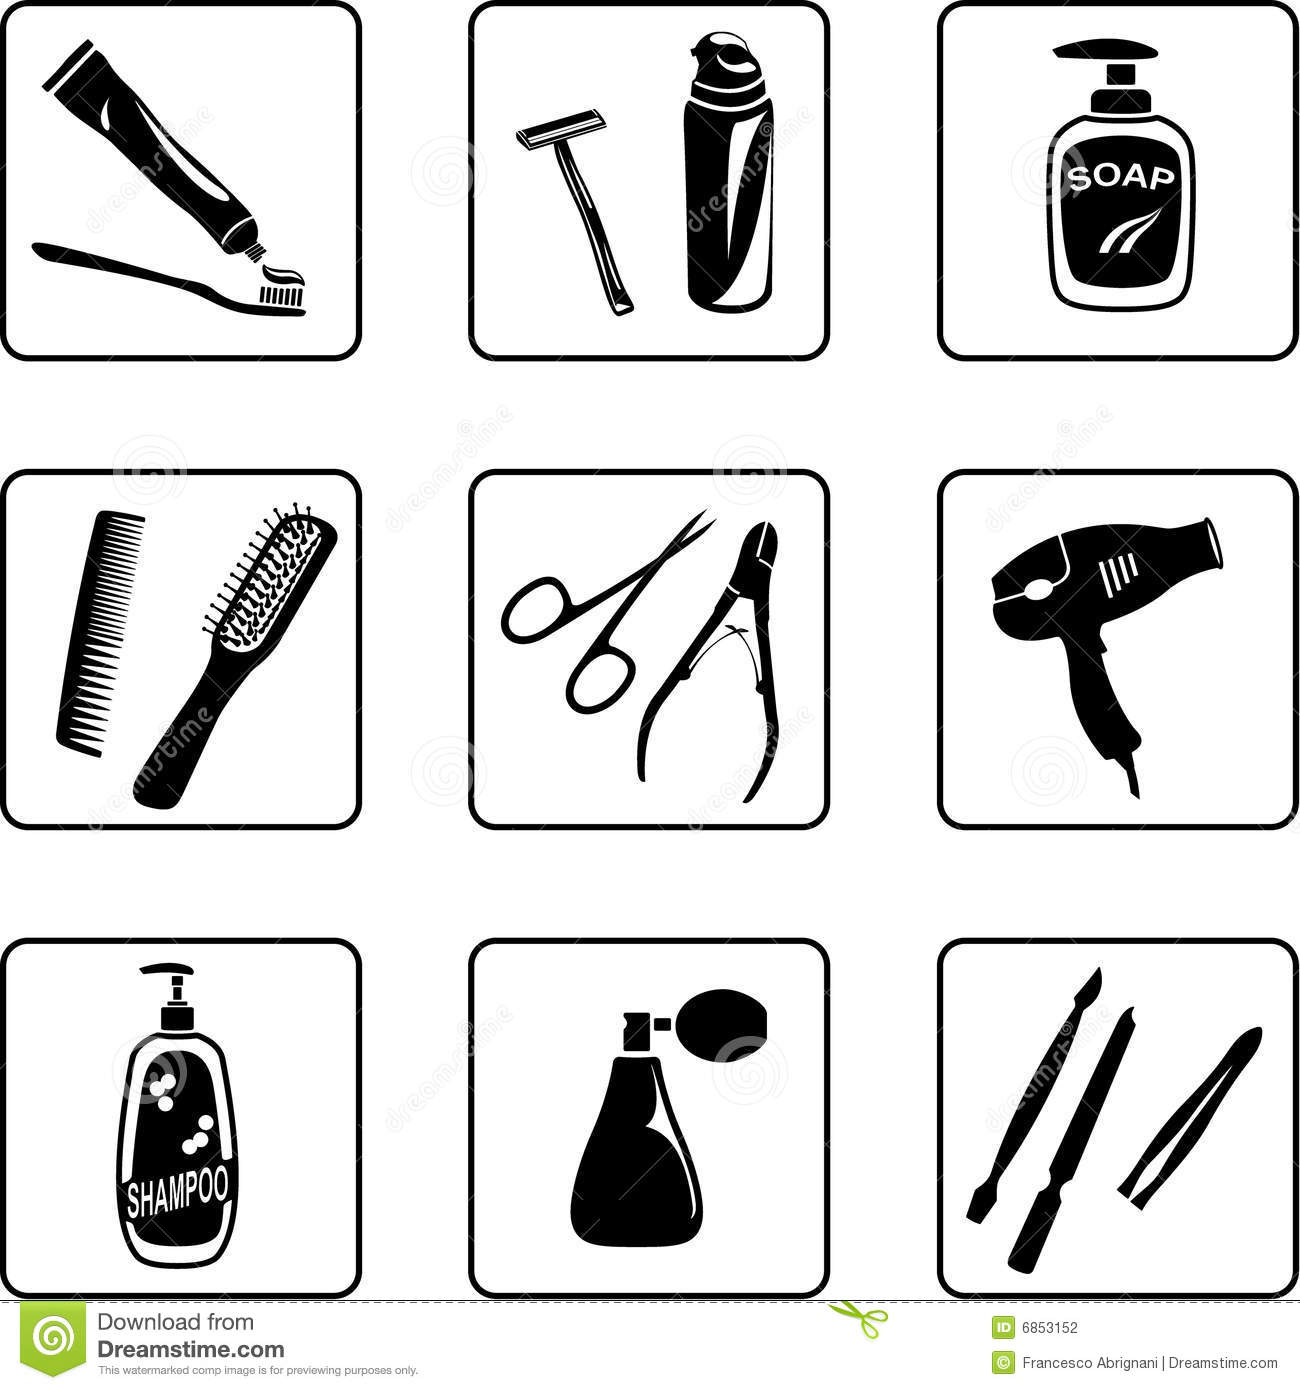 Personal hygiene objects stock vector illustration of for A bathroom item that starts with p